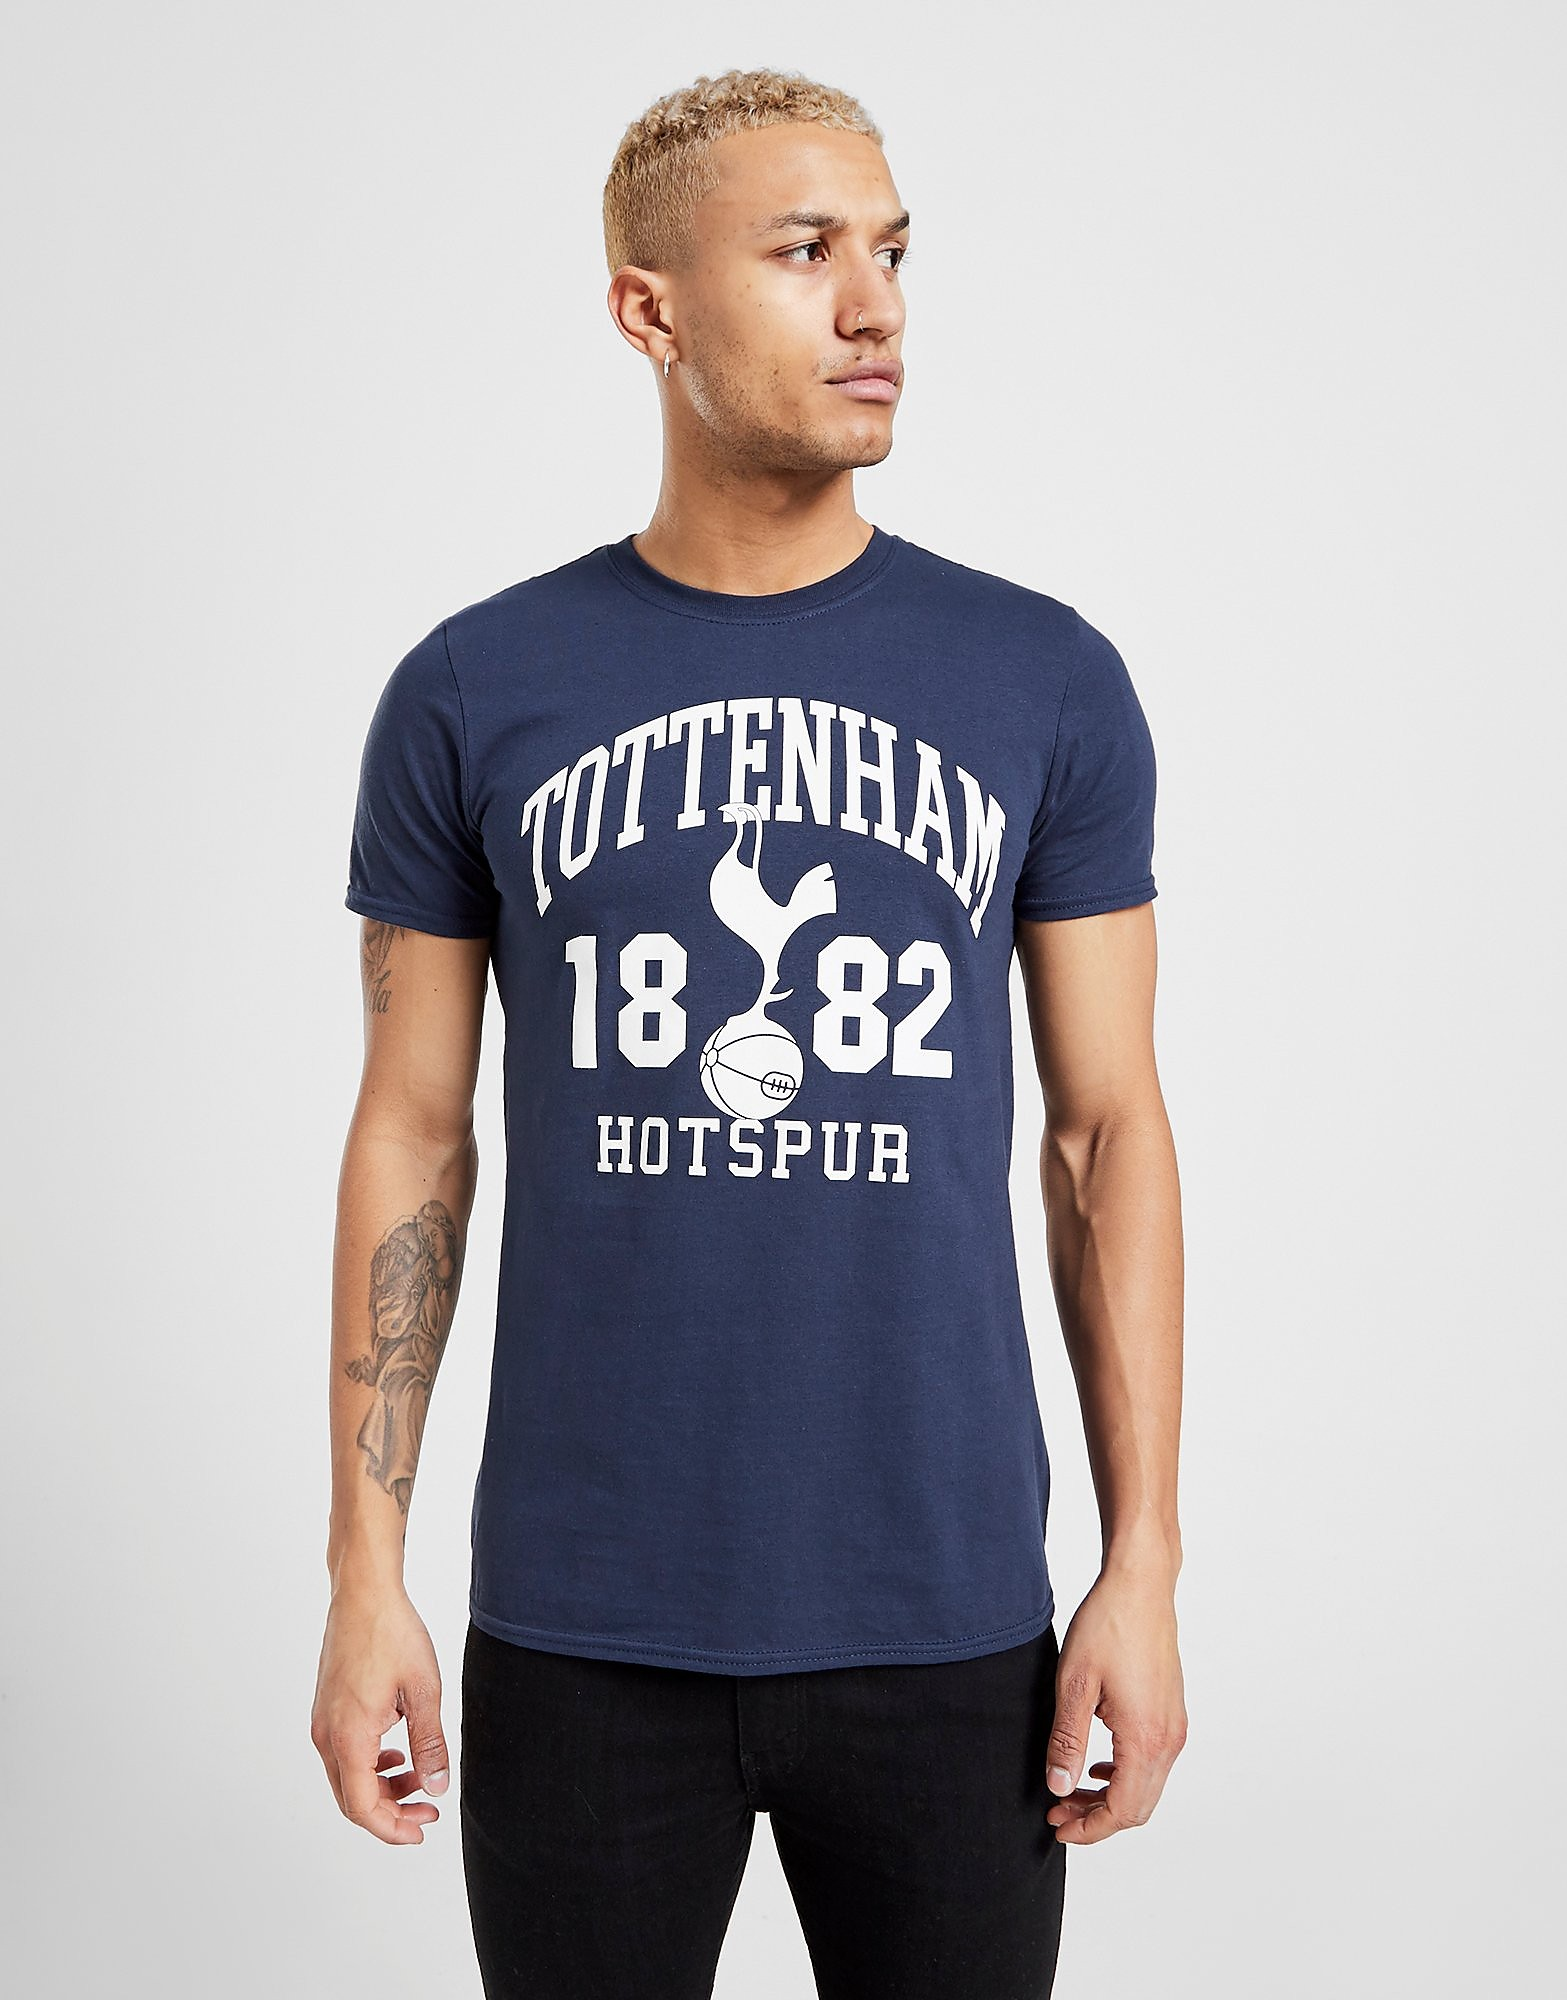 SOURCE LAB LTD Tottenham Hotspur FC 1882 T-Shirt